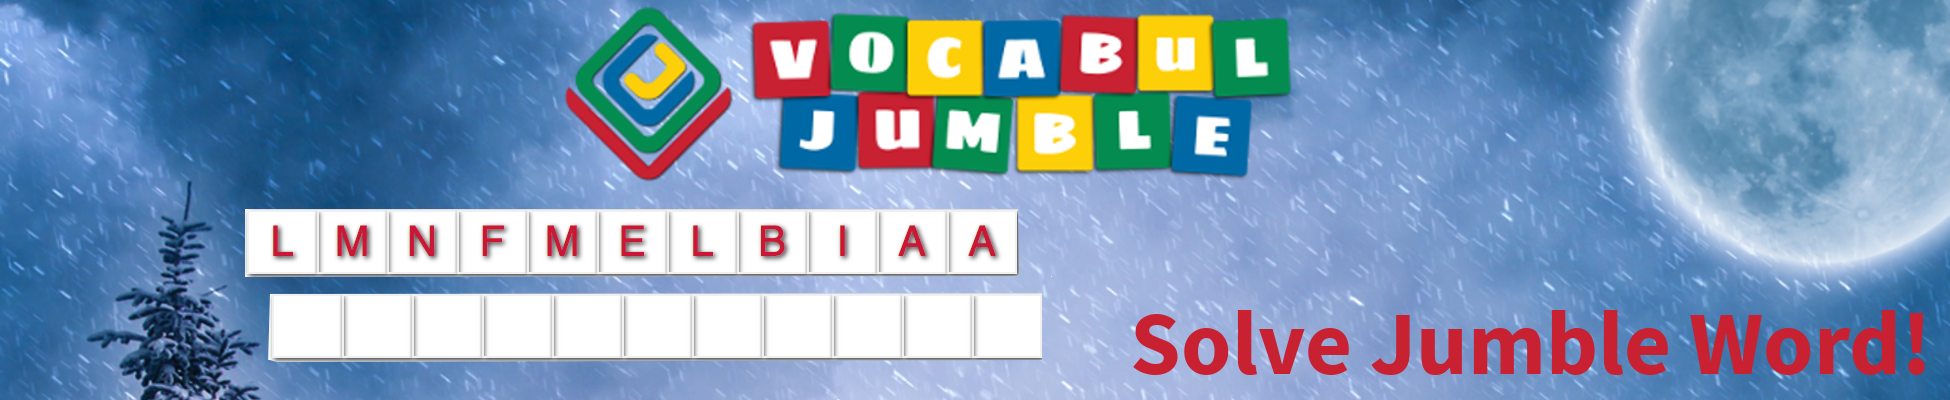 Vocabul Jumble